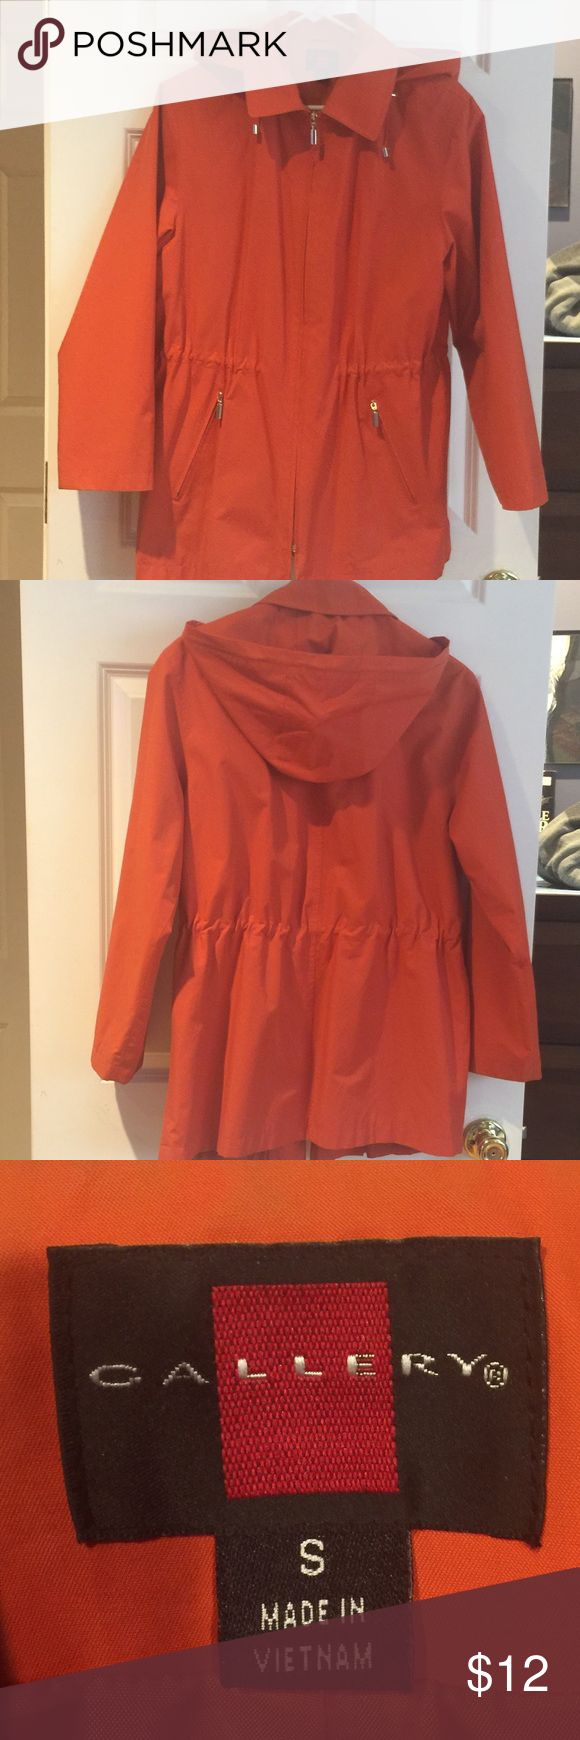 Women's Rain Jacket Women's rain jacket by Gallery. Orange color. Has a detachable hood & toggles inside to cinch the jacket in at the waist. I purchased this at Macy's & only wore it once. It's a nice lightweight spring jacket, even in the sun! ☂️☀️ Gallery Jackets & Coats Trench Coats